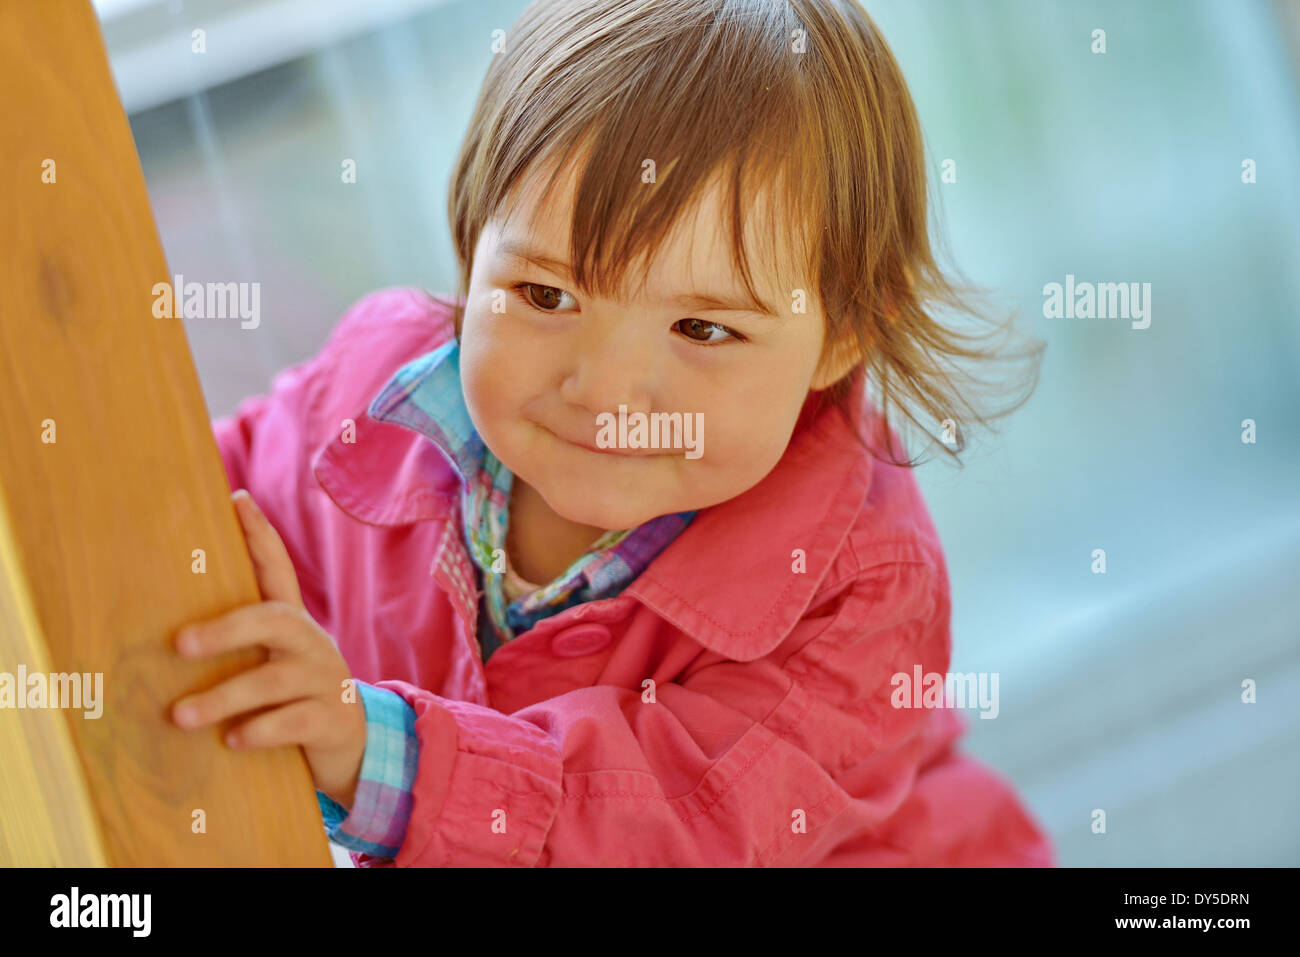 Female toddler peeking from a wooden post - Stock Image